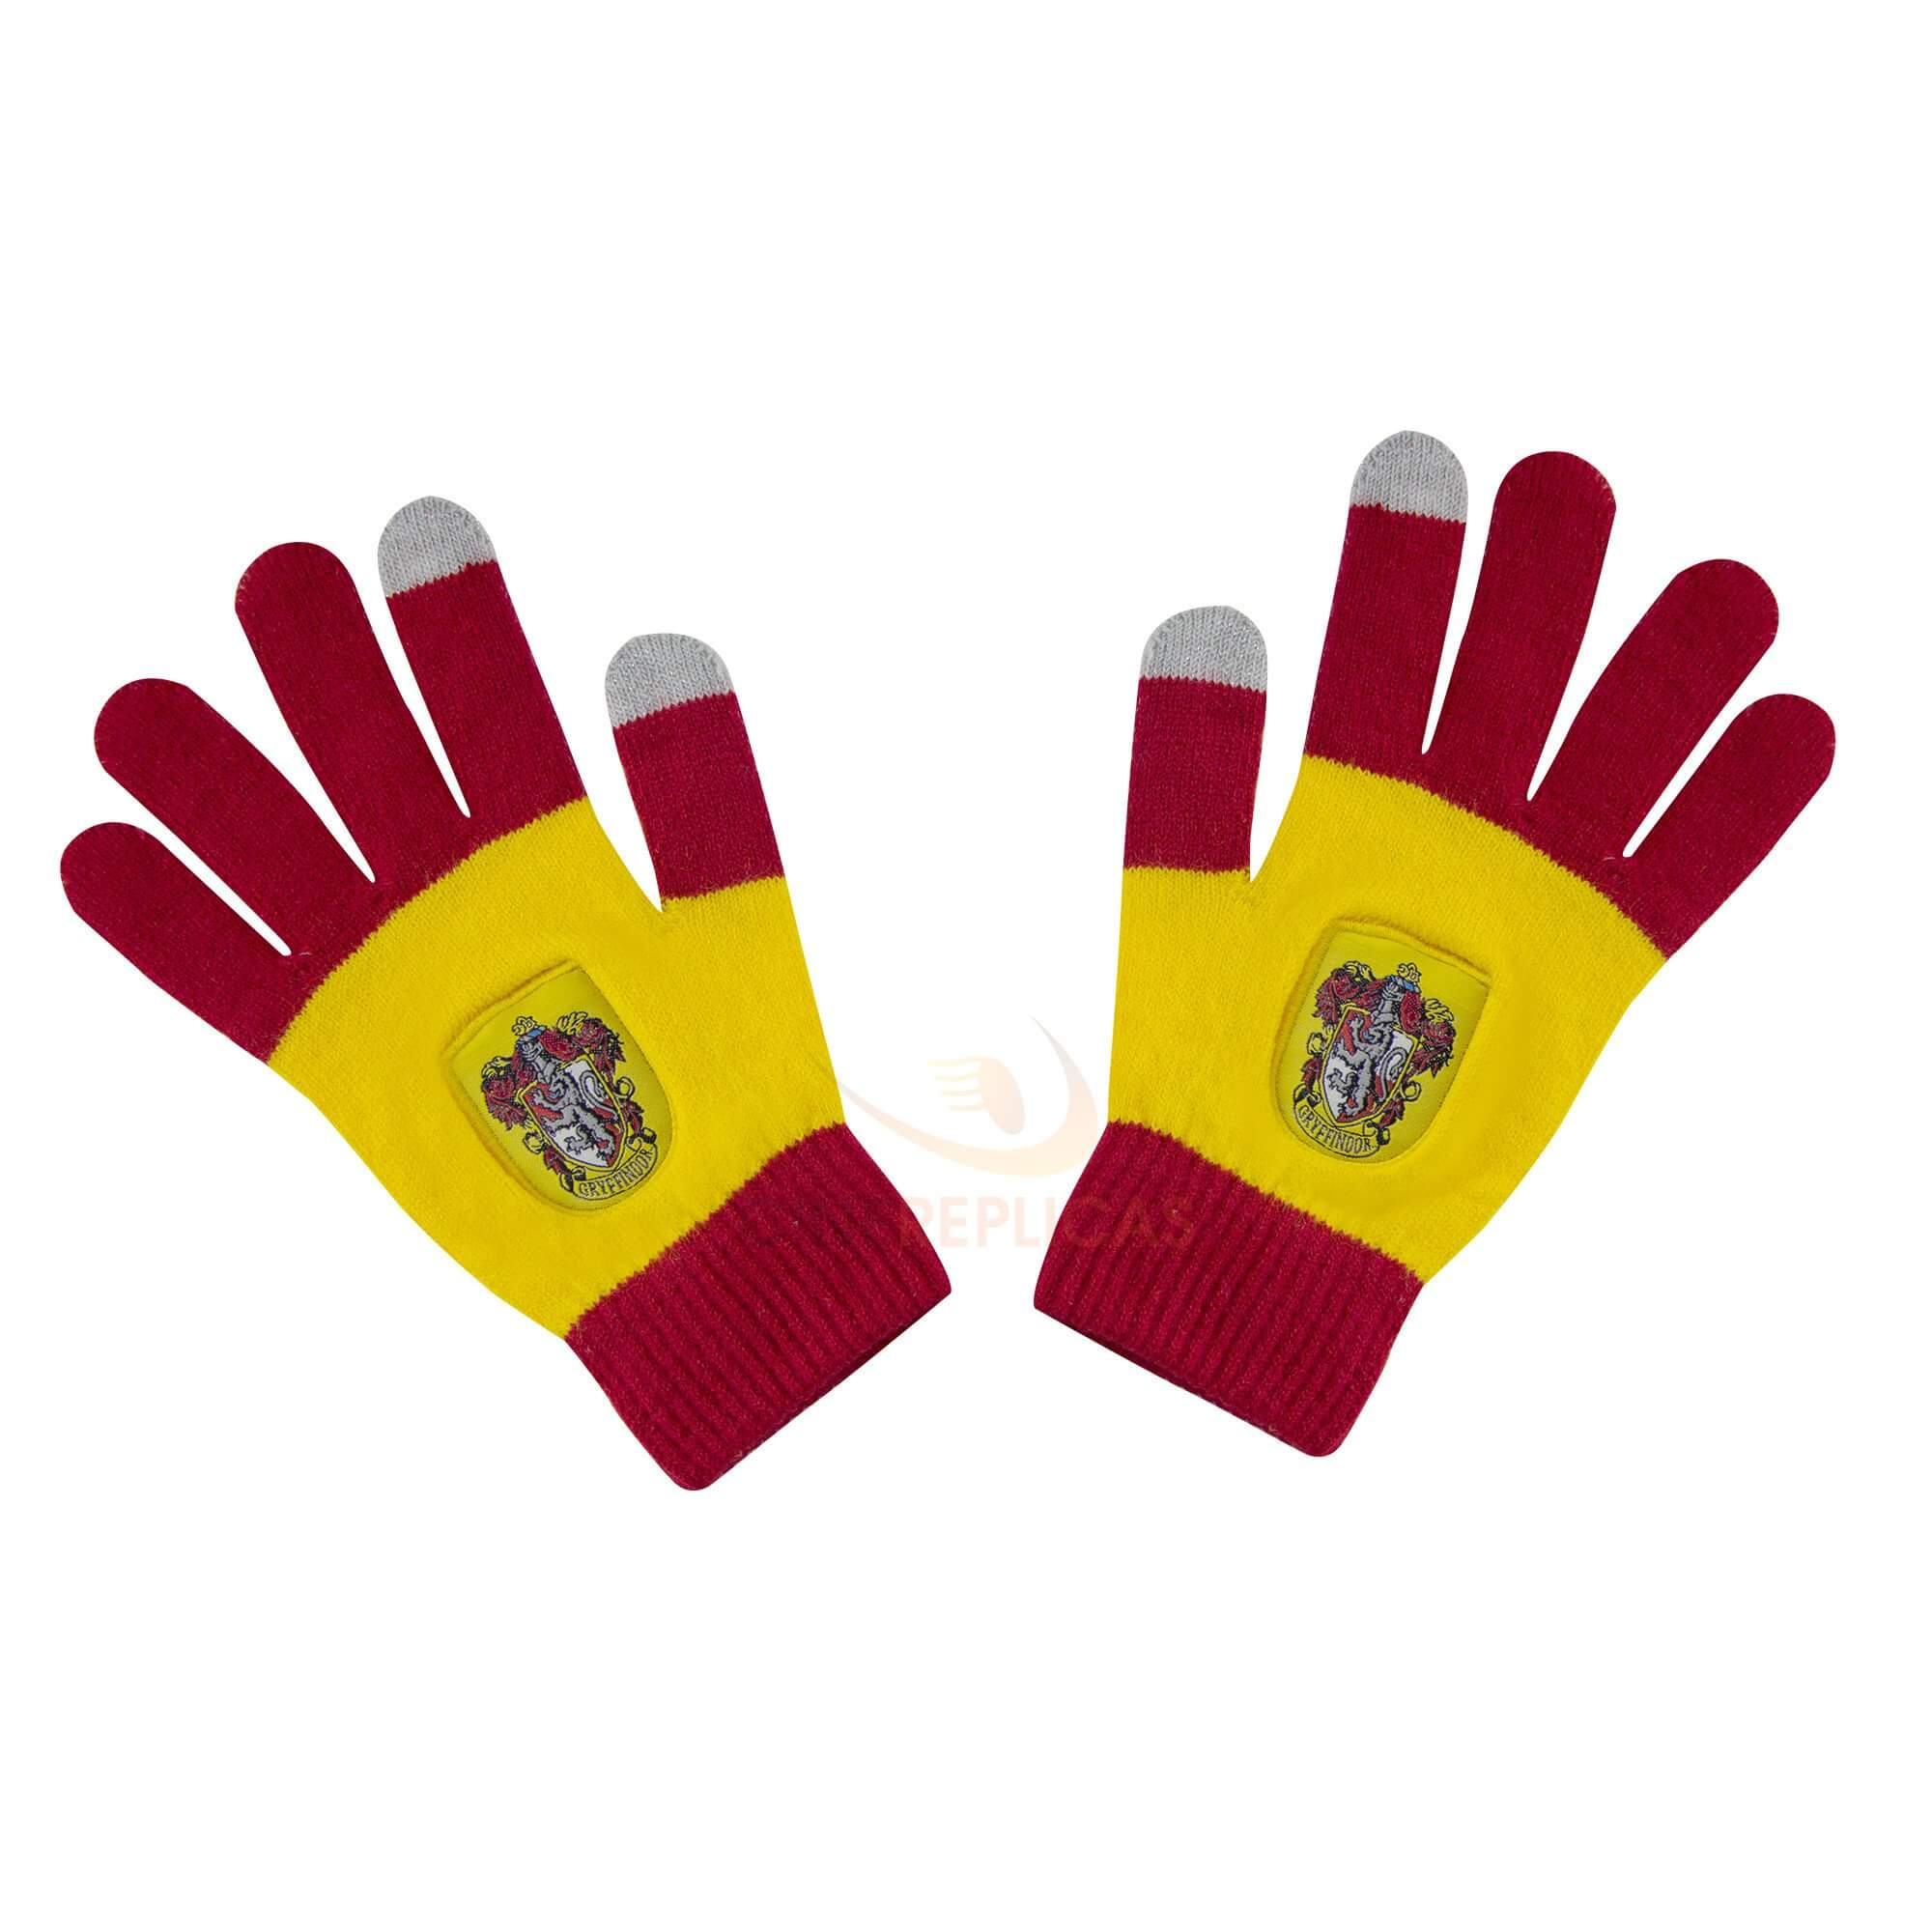 GANTS TACTILES GRYFFONDOR - HARRY POTTER